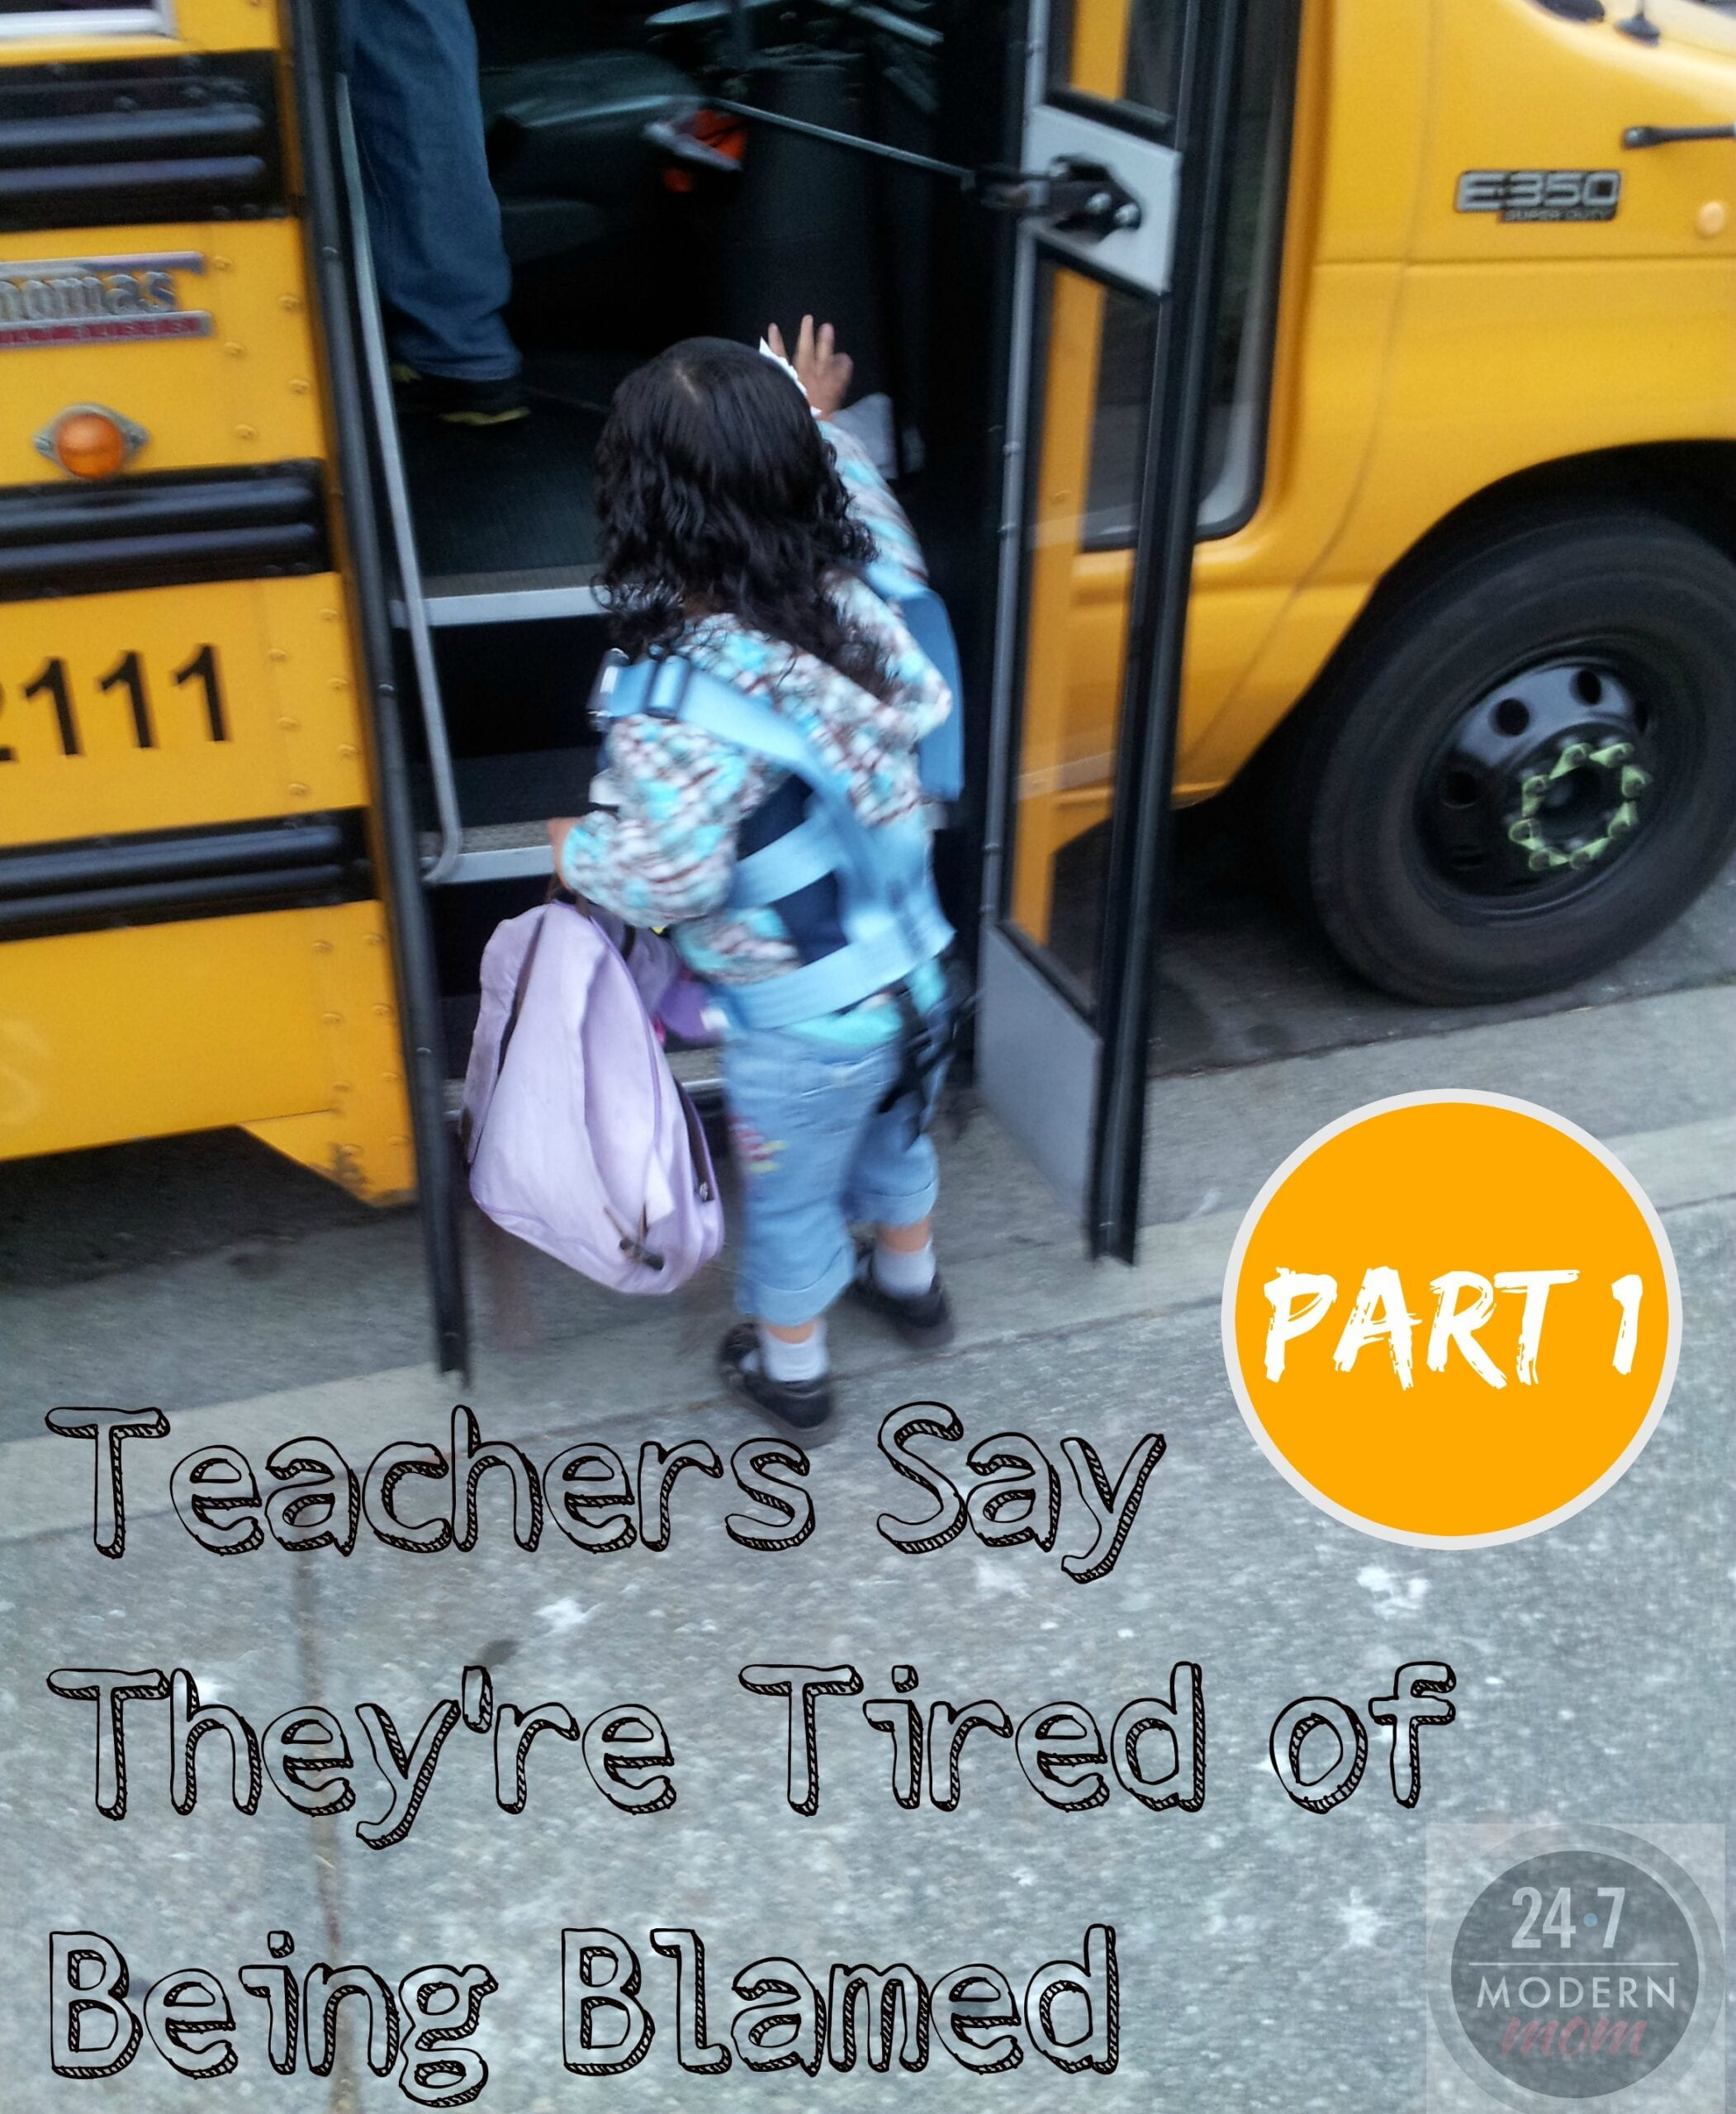 Teachers Say They're Tired Of Being Blamed: Part II